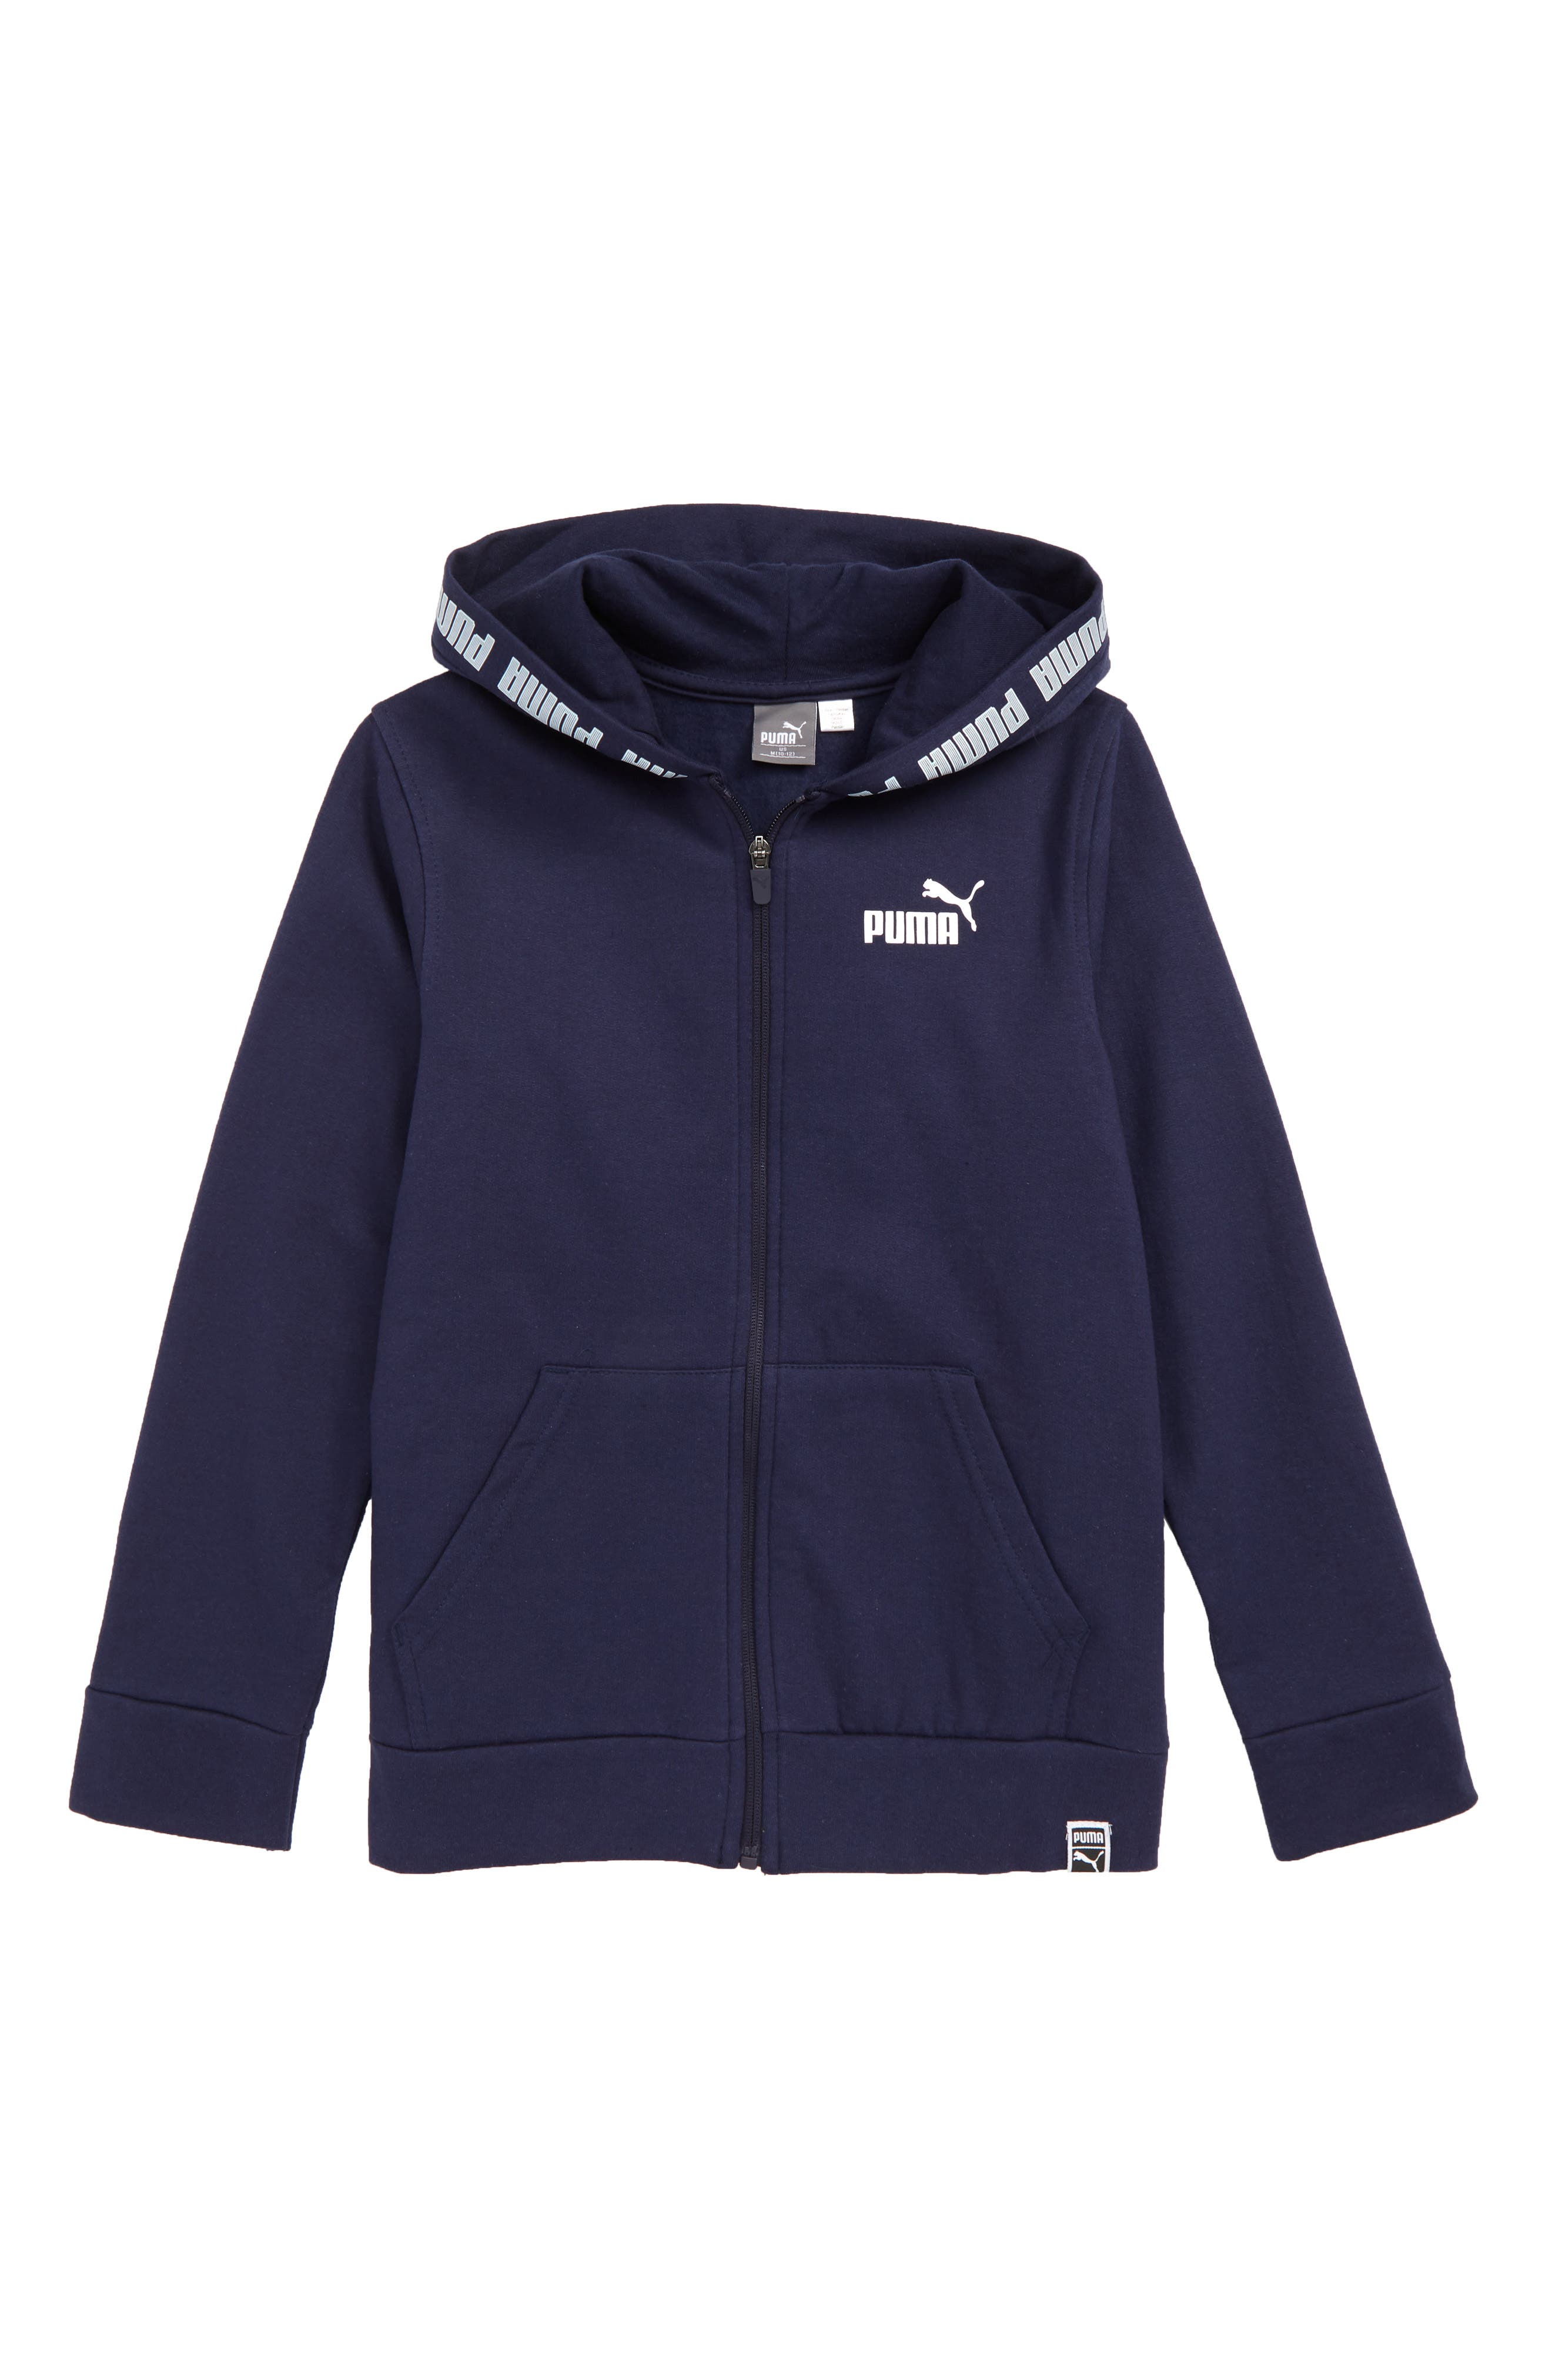 PUMA Fleece Zip Hoodie, Main, color, PEACOAT